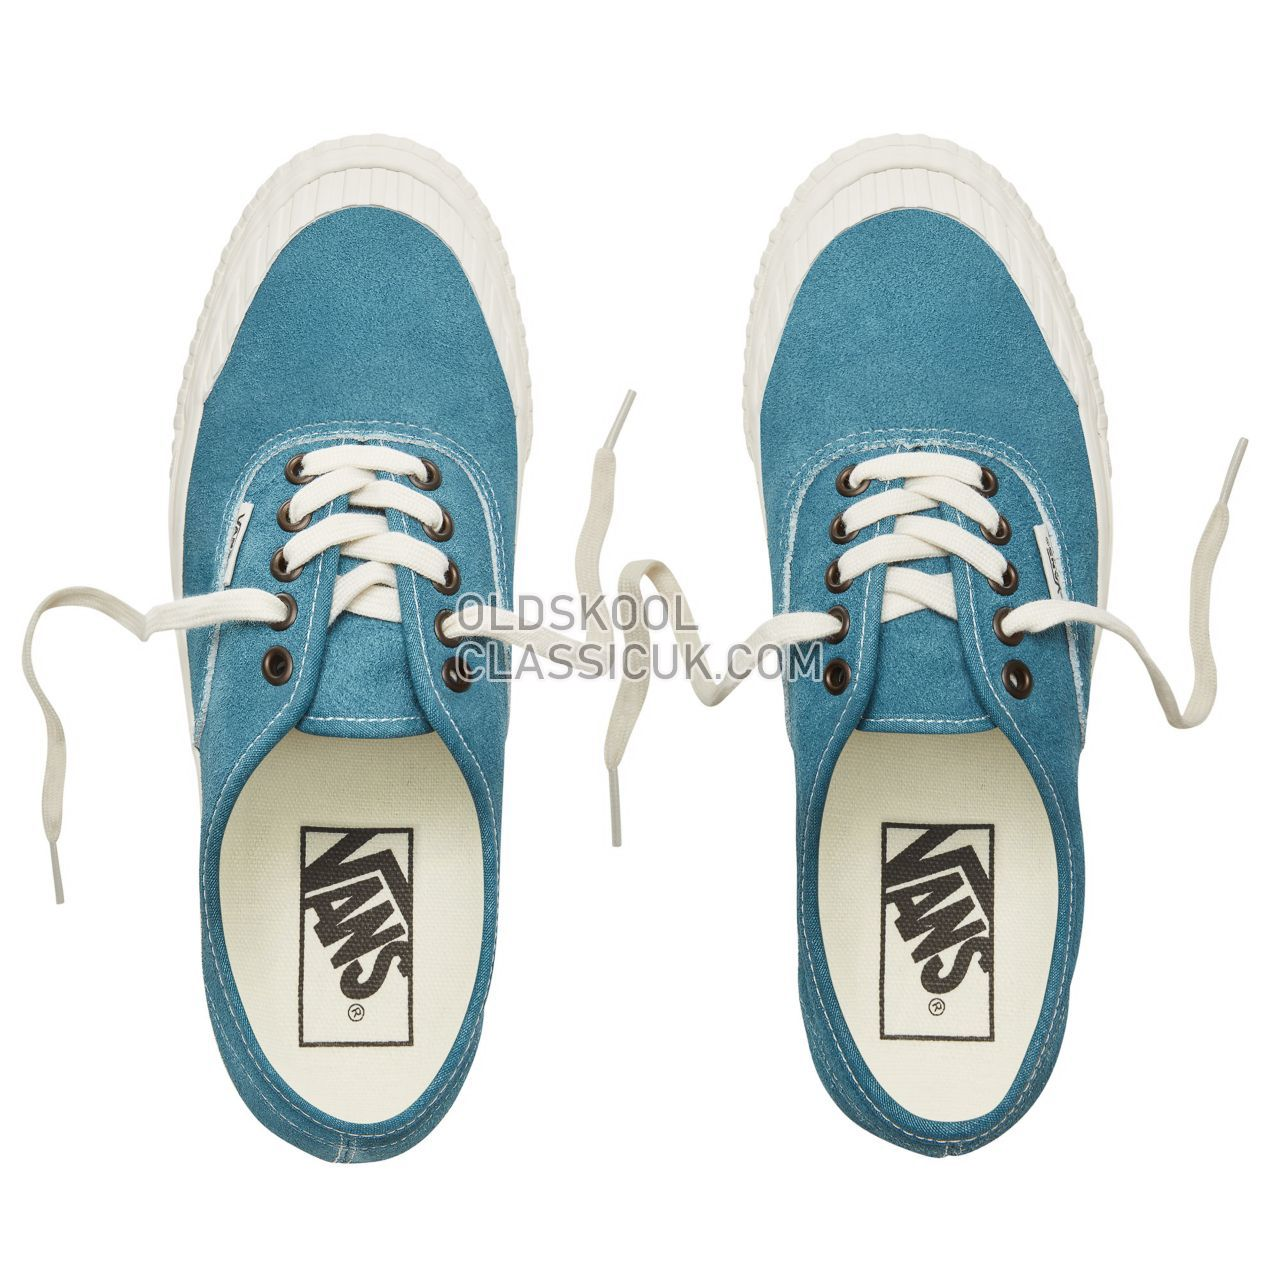 Vans Suede Vintage Military Authentic 138 Sneakers Mens (Vintage Military) Corsair VA3TK6U67 Shoes